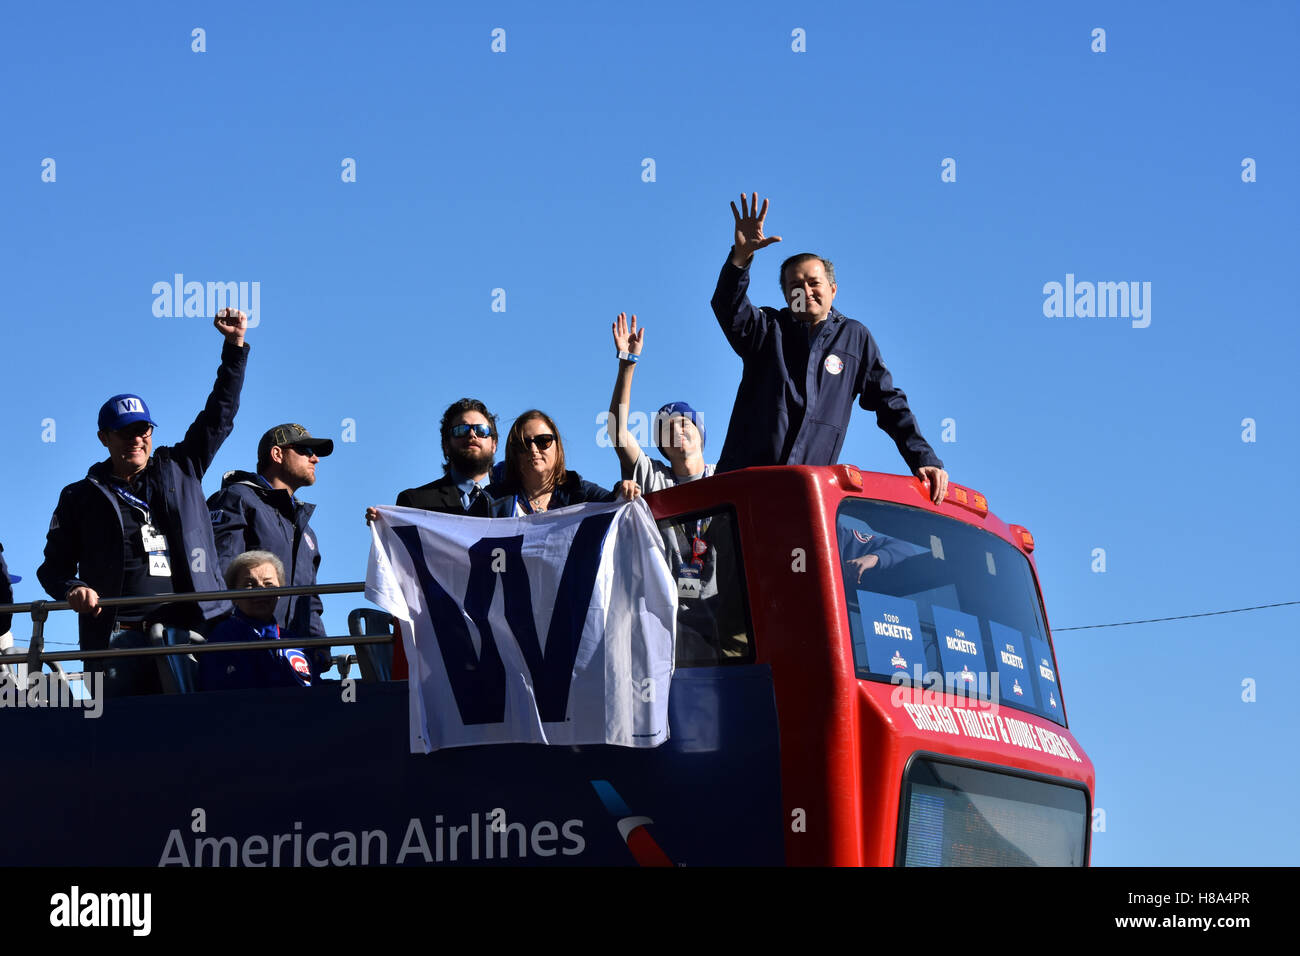 2016 Chicago Cubs World Series Parade - Stock Image